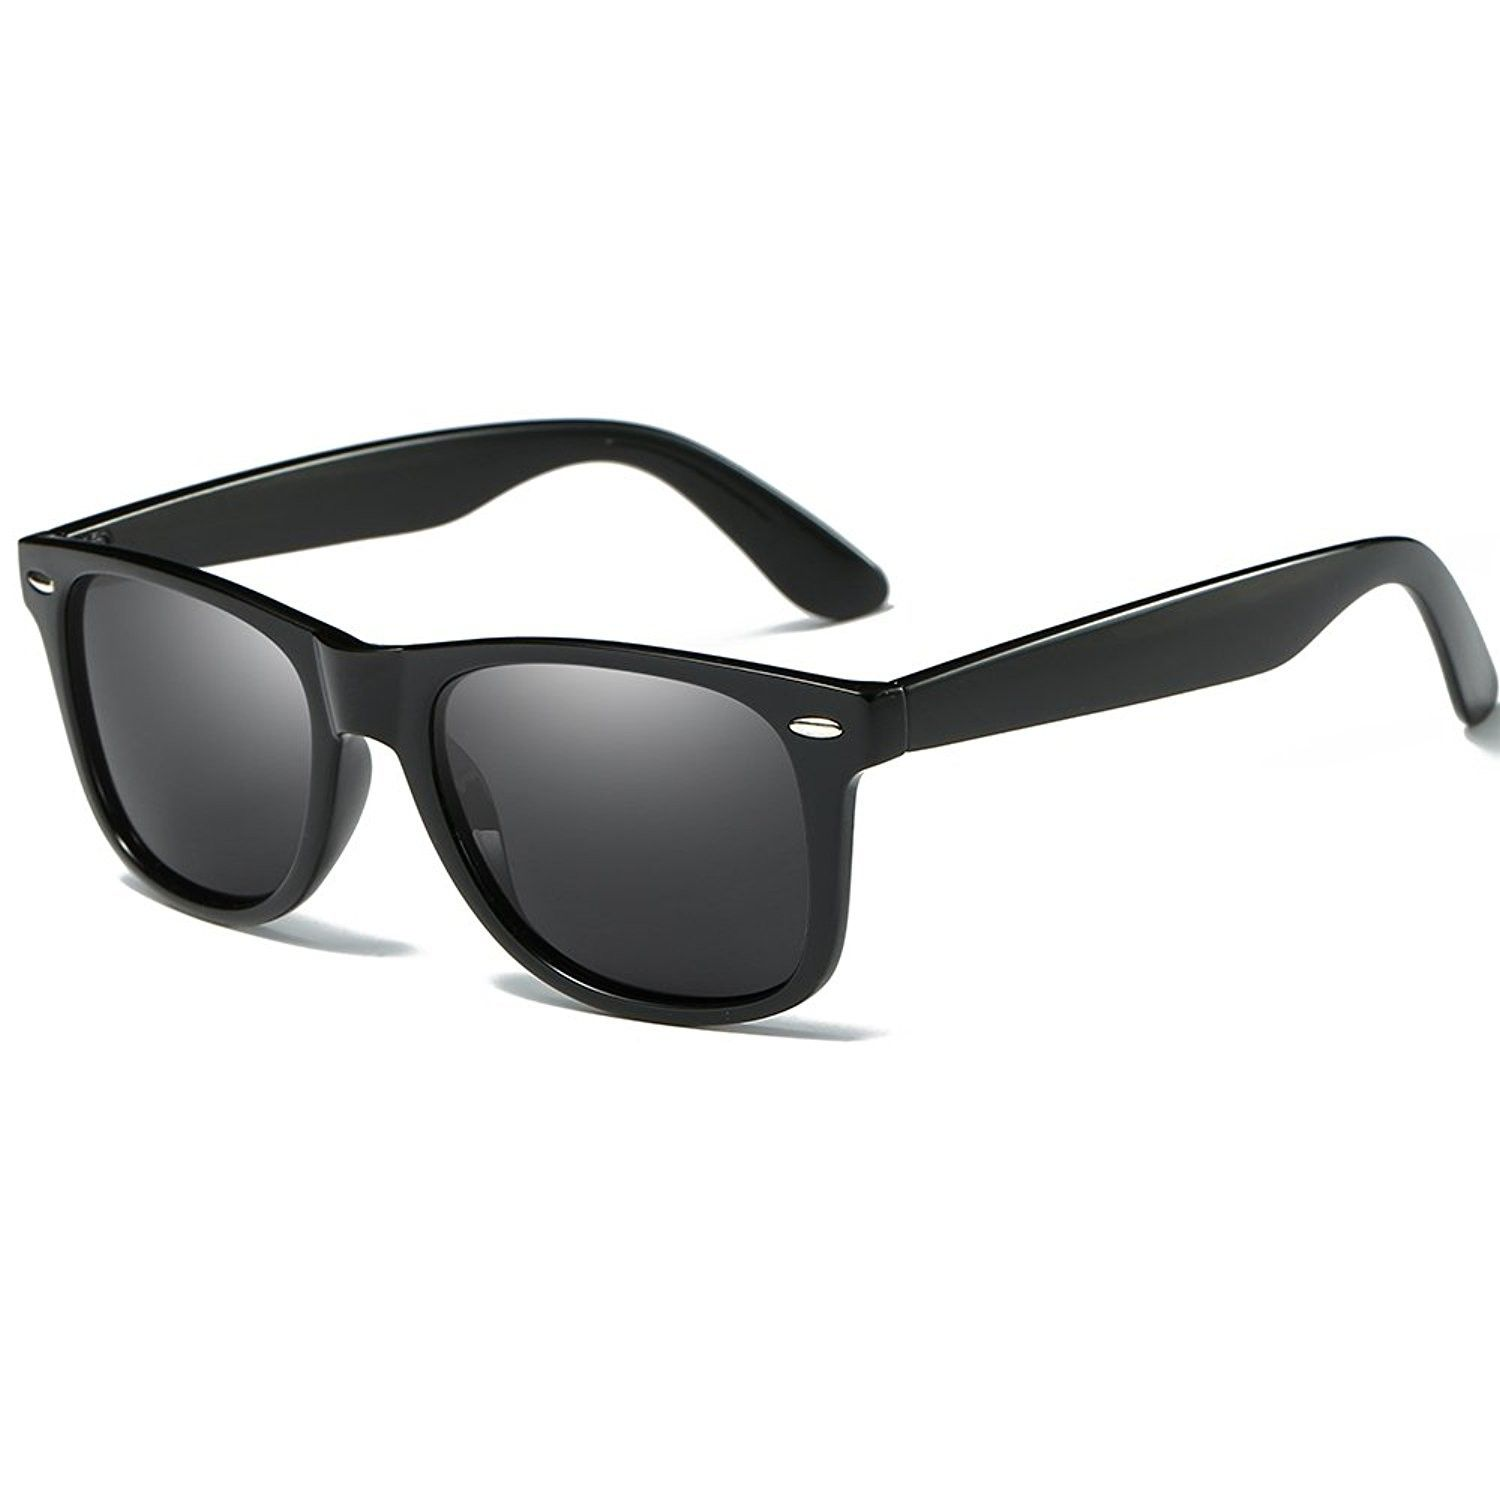 838192d06b Polarized Clubmaster Classic Half Frame Semi-Rimless Rimmed Sunglasses -  Black B - CZ185EUE2WX -